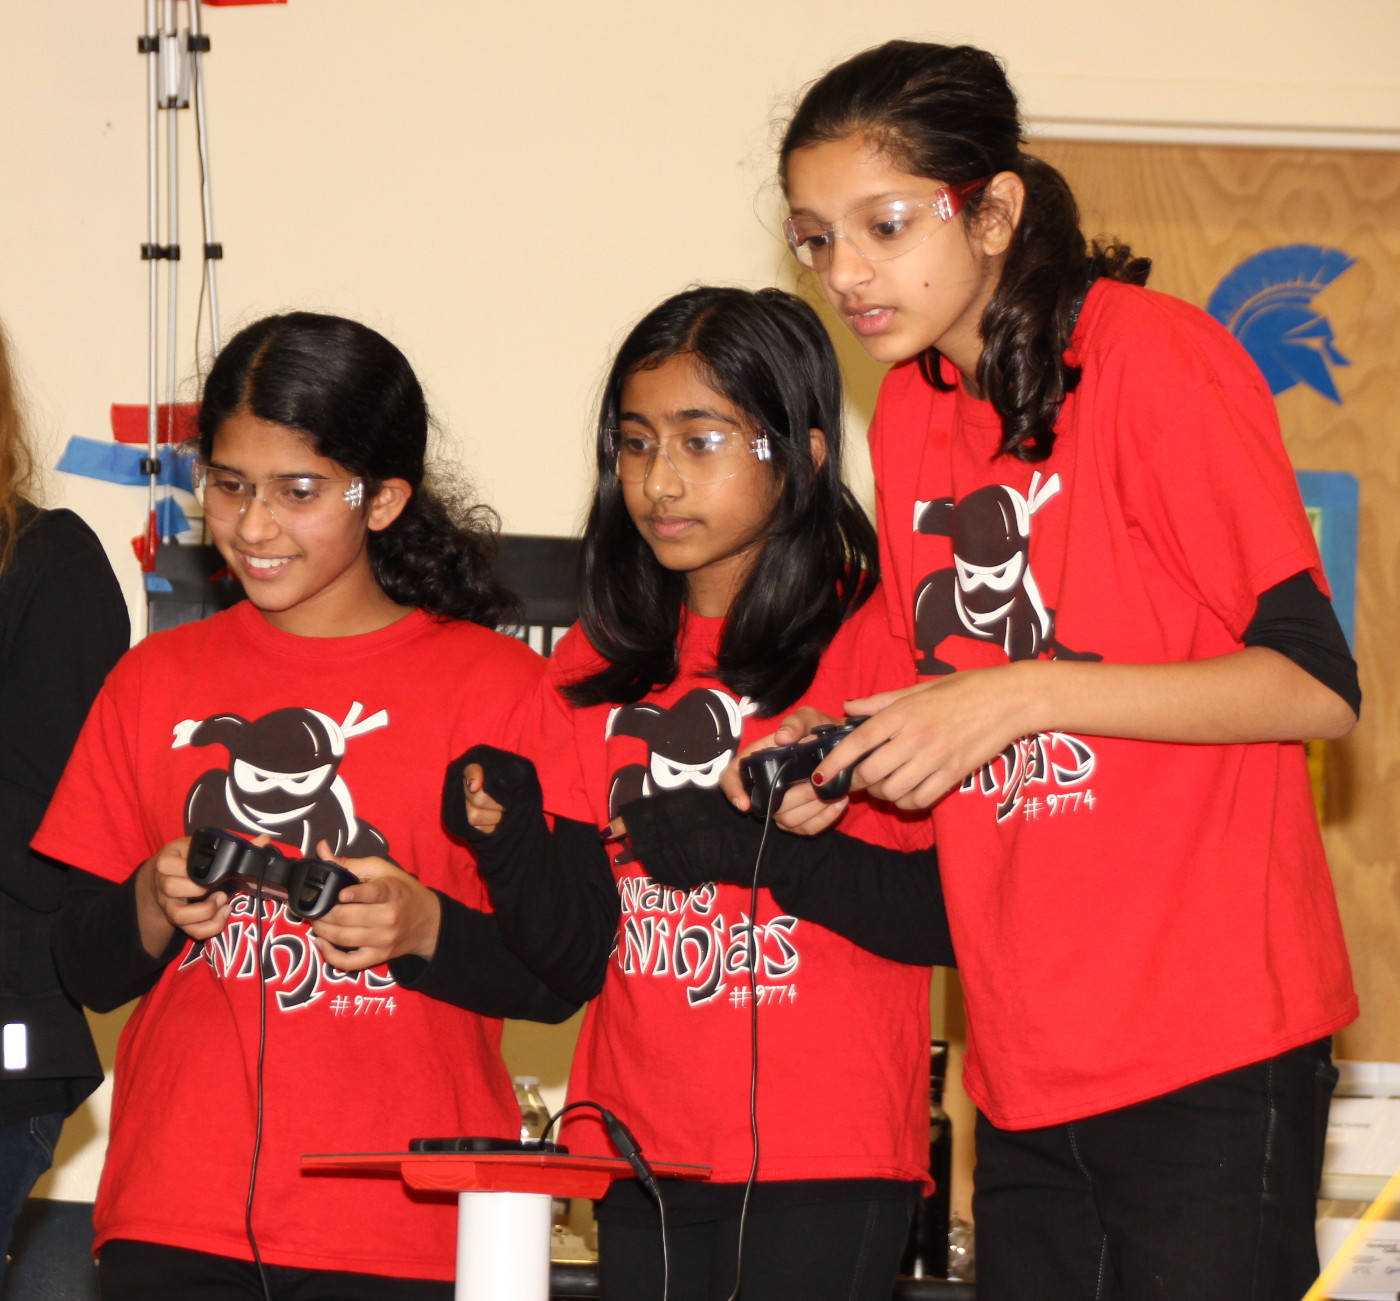 The Nano Ninjas team concentrating during one of the heats